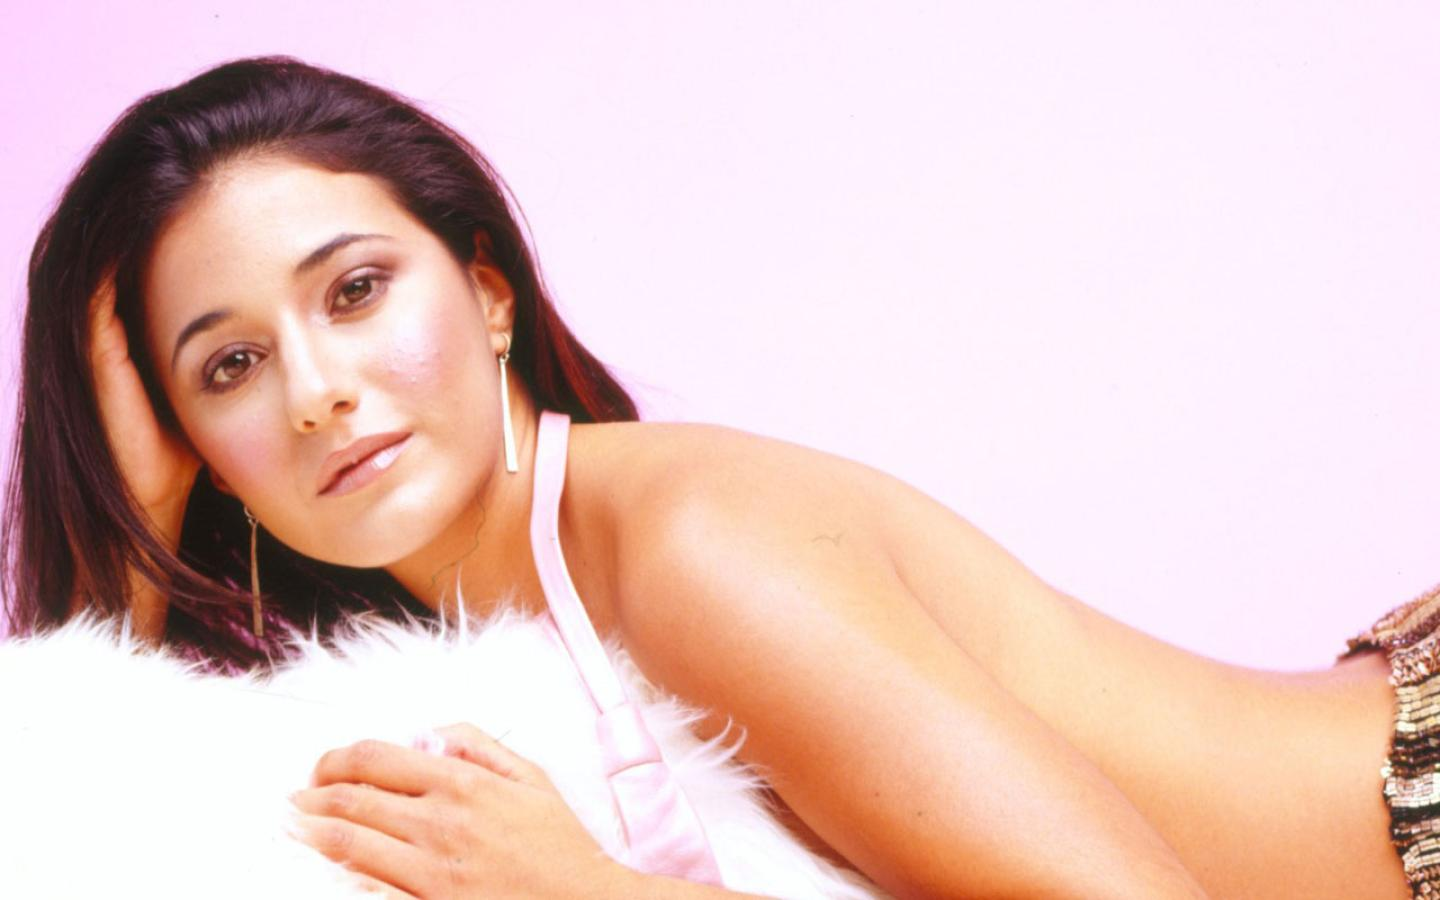 Emmanuelle Chriqui  Wallpaper #2 1440 x 900